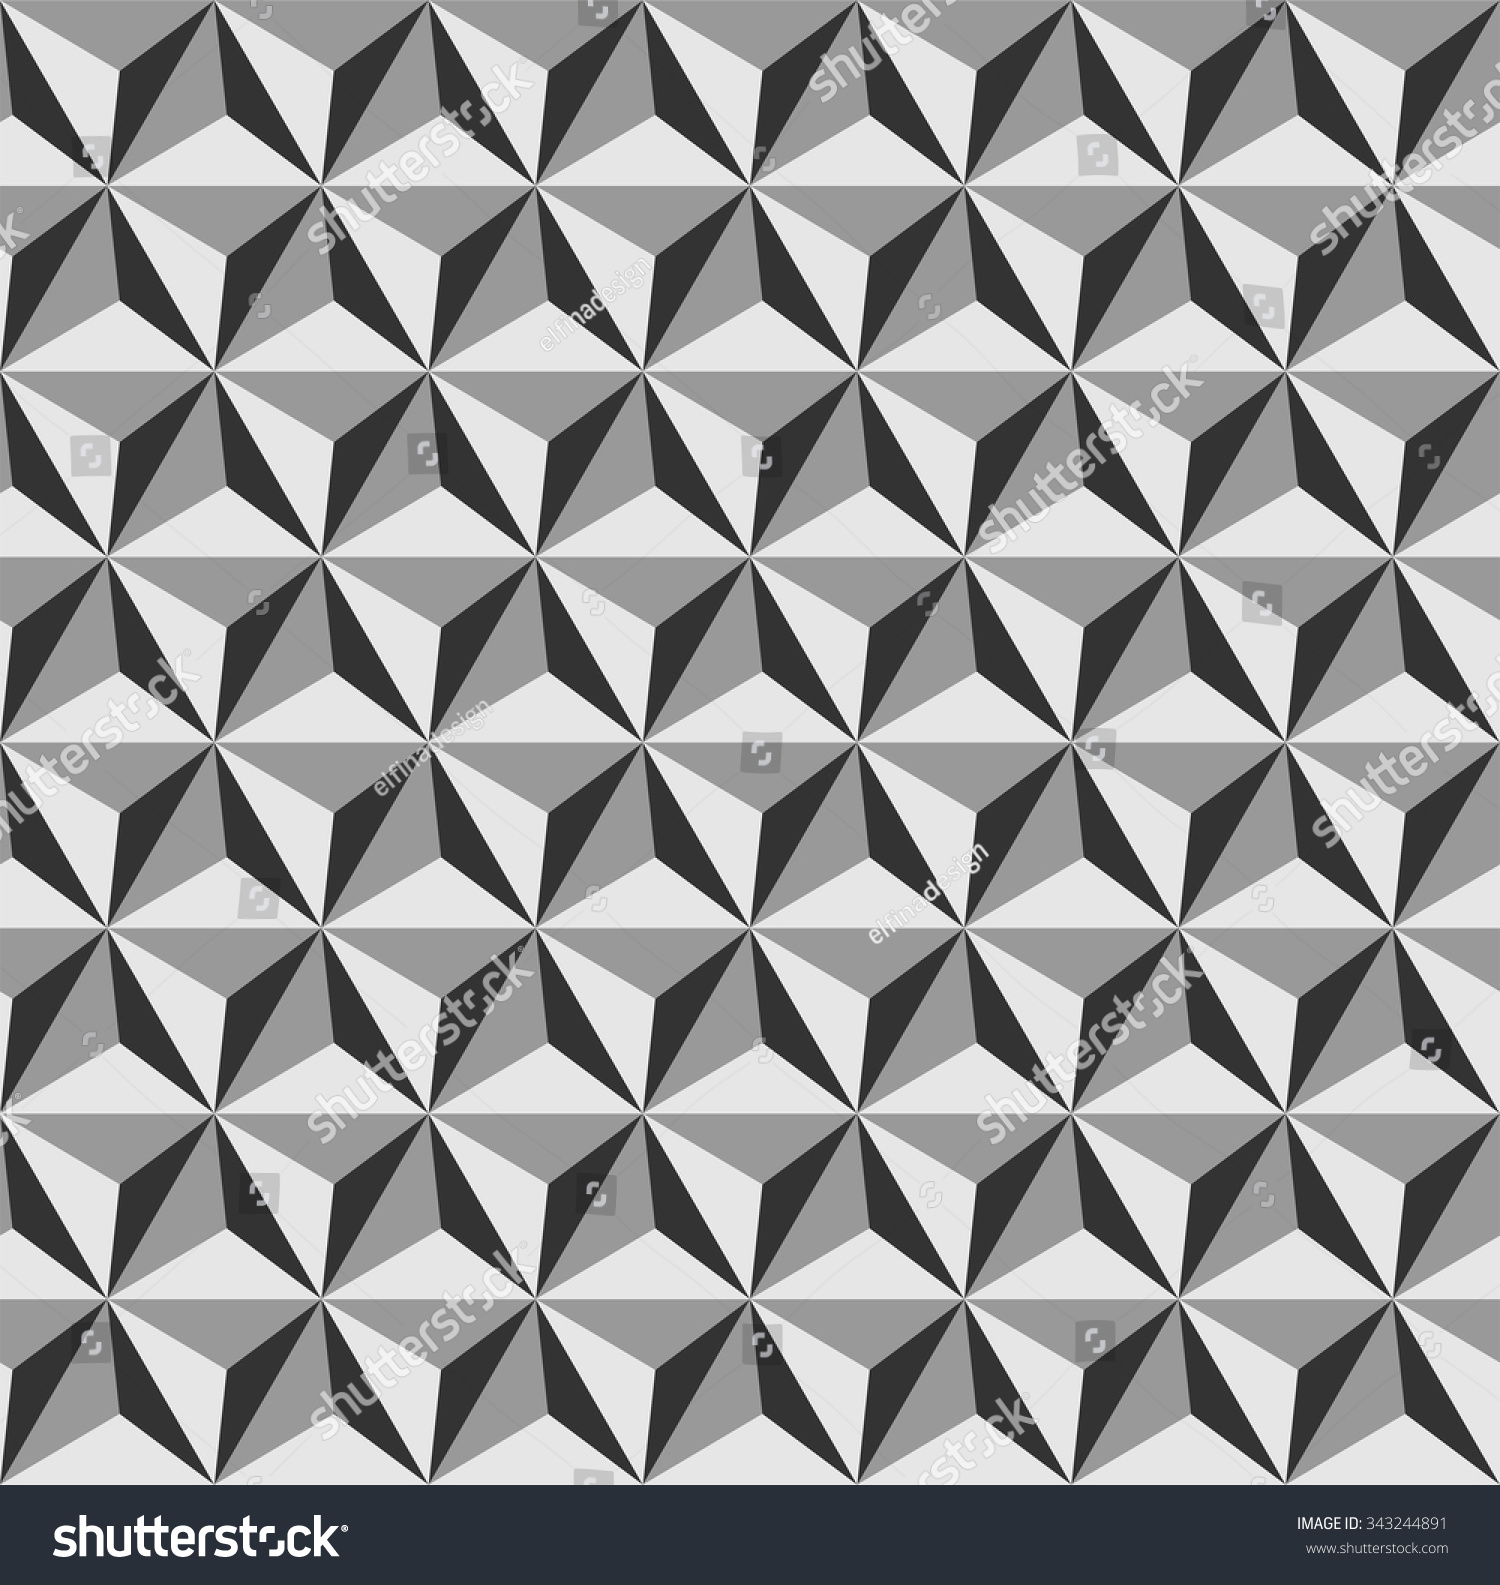 Tetrahedrons Pattern Vector Abstract Geometric Pattern Stock ...